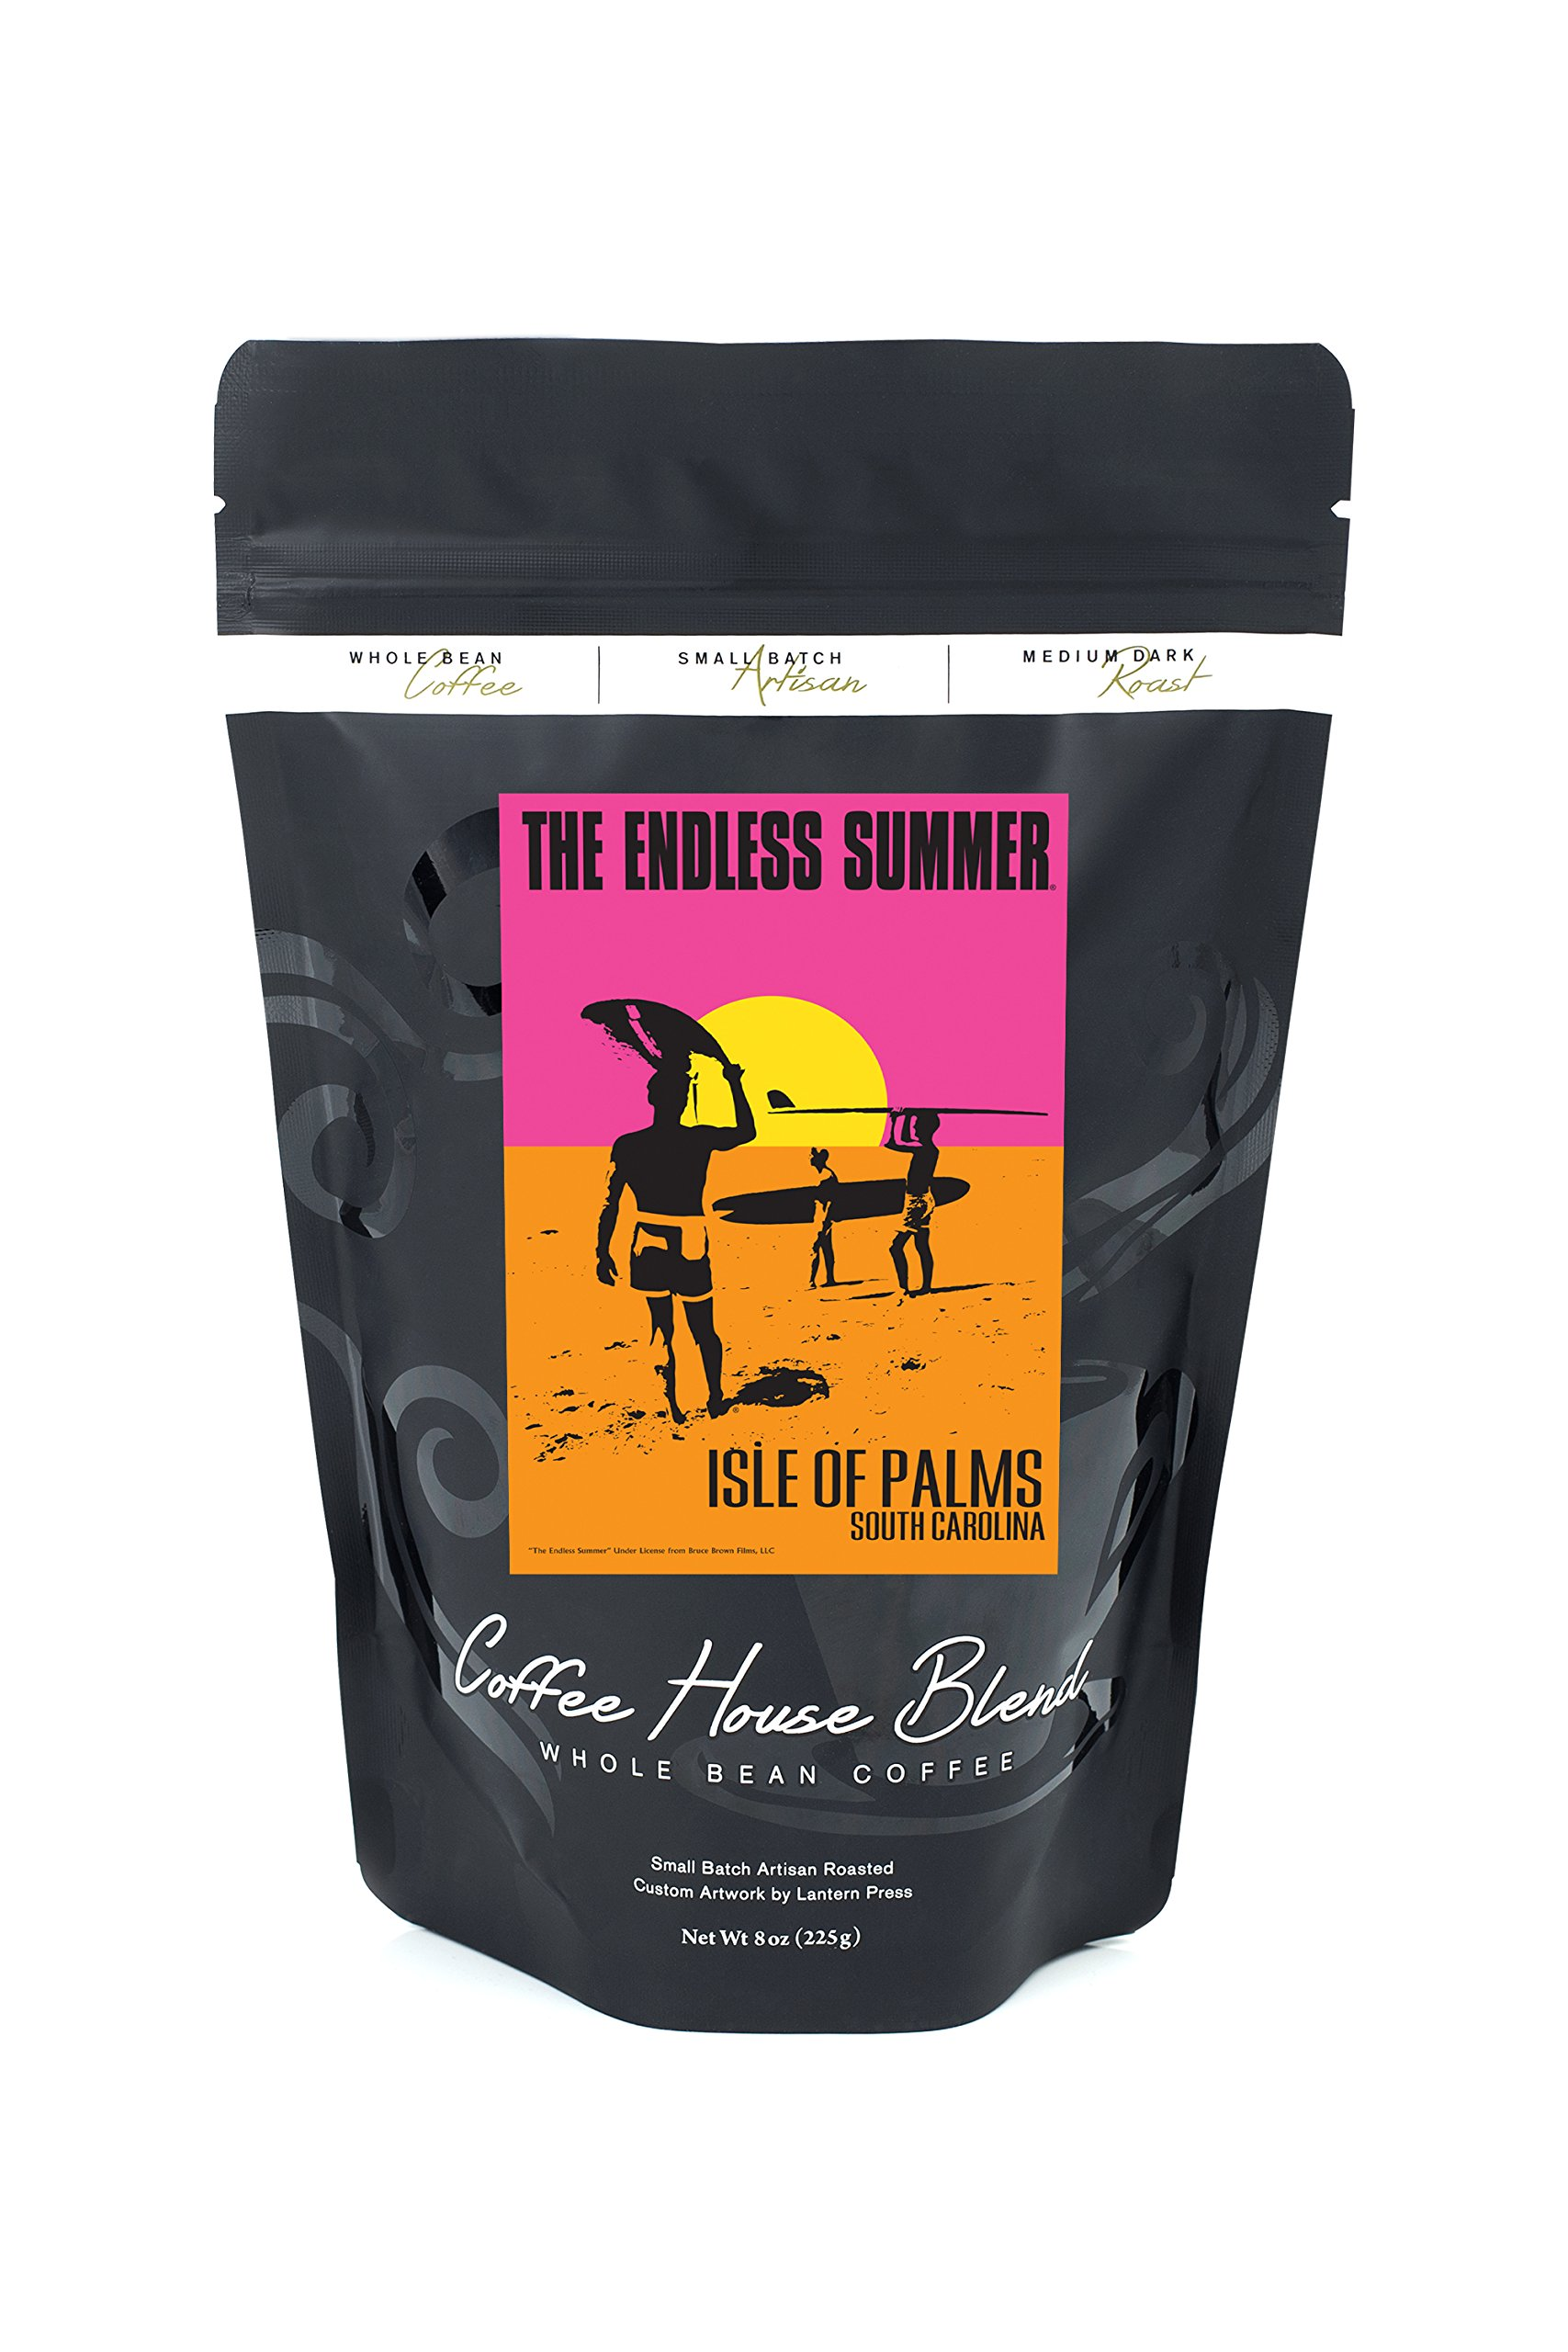 Isle of Palms, South Carolina - The Endless Summer - Original Movie Poster (8oz Whole Bean Small Batch Artisan Coffee - Bold & Strong Medium Dark Roast w/ Artwork)